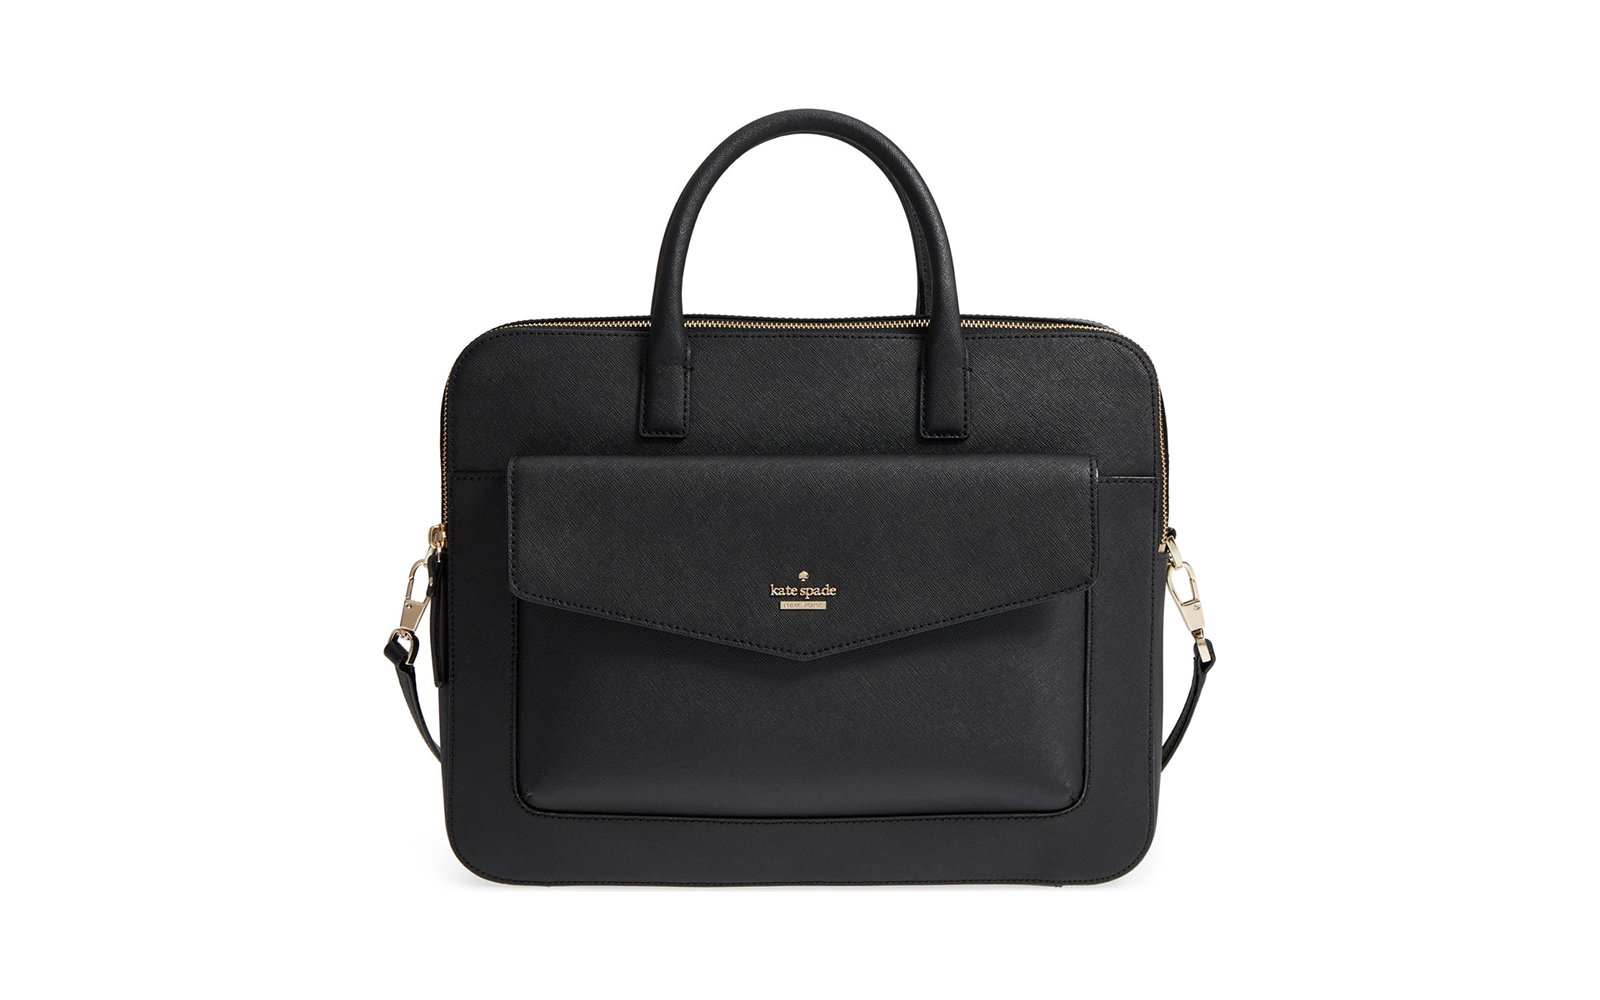 Kate Spade New York Laptop Bag